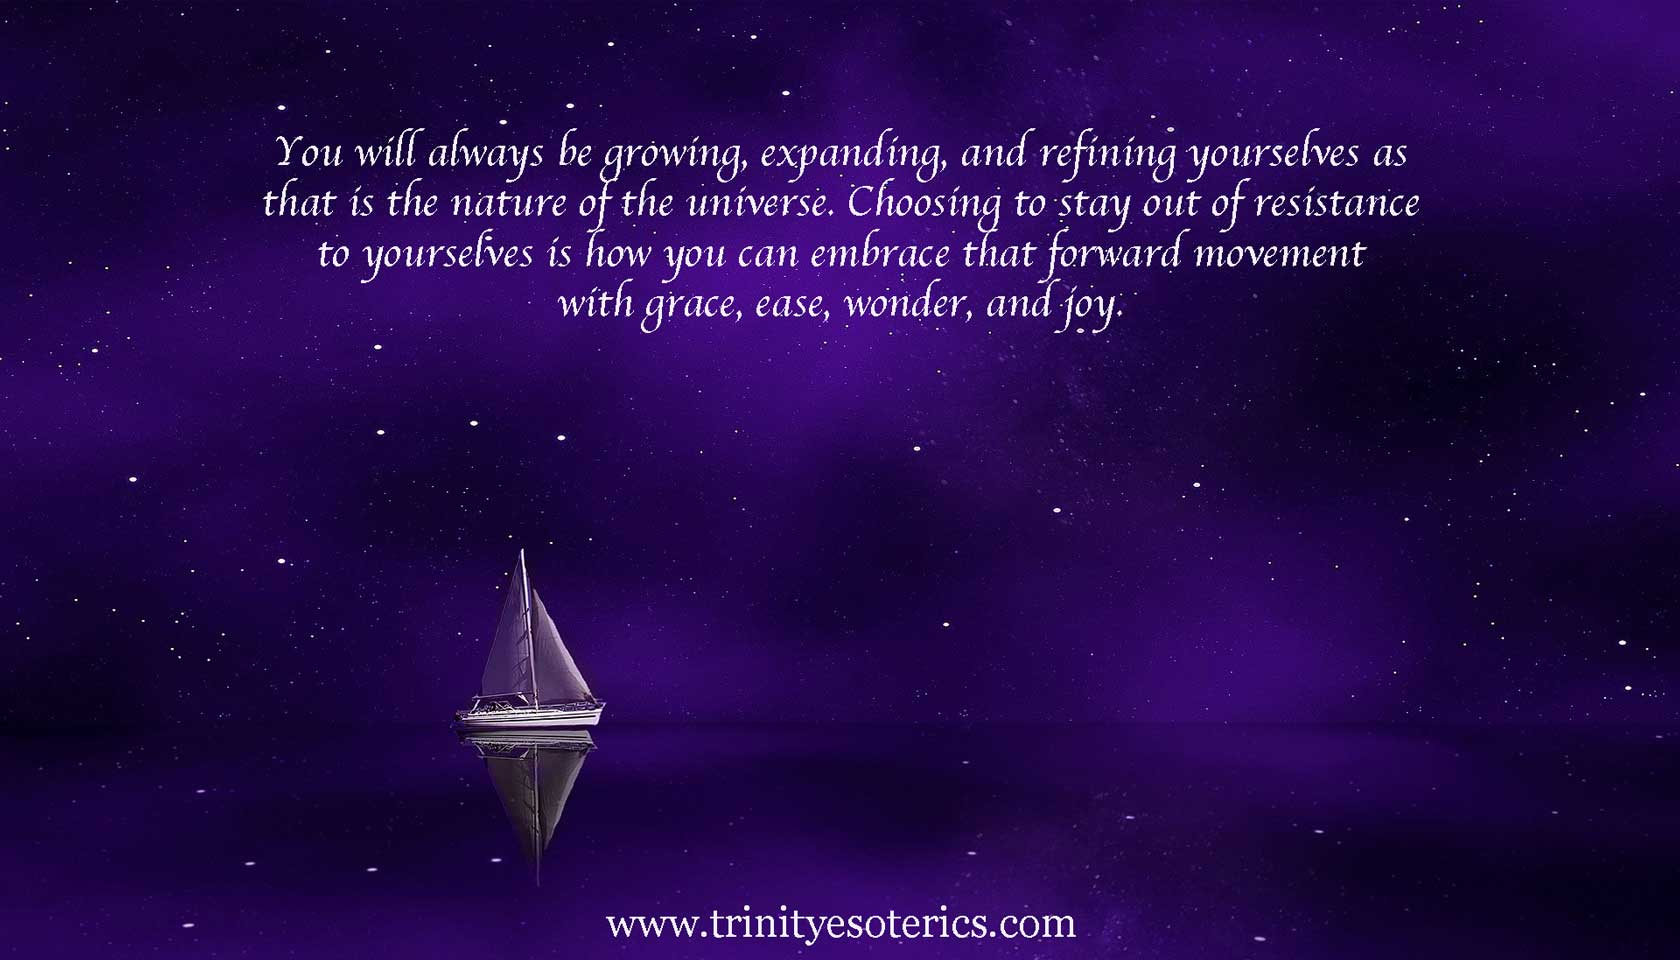 sailboat in cosmos trinity esoterics